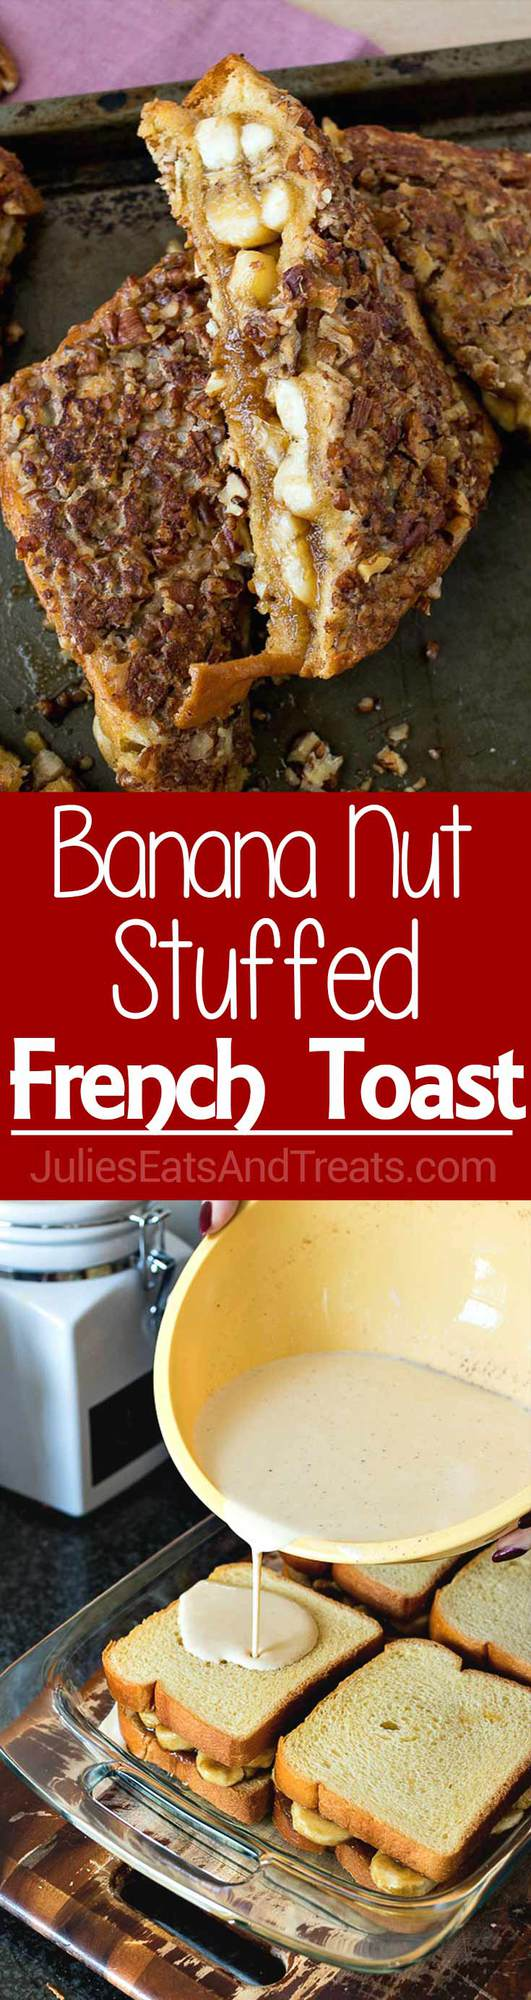 Banana Nut Stuffed French Toast - Sweet and sticky bananas stuffed into french toast and covered in chopped nuts. A fun, yet easy breakfast that the whole family will love!